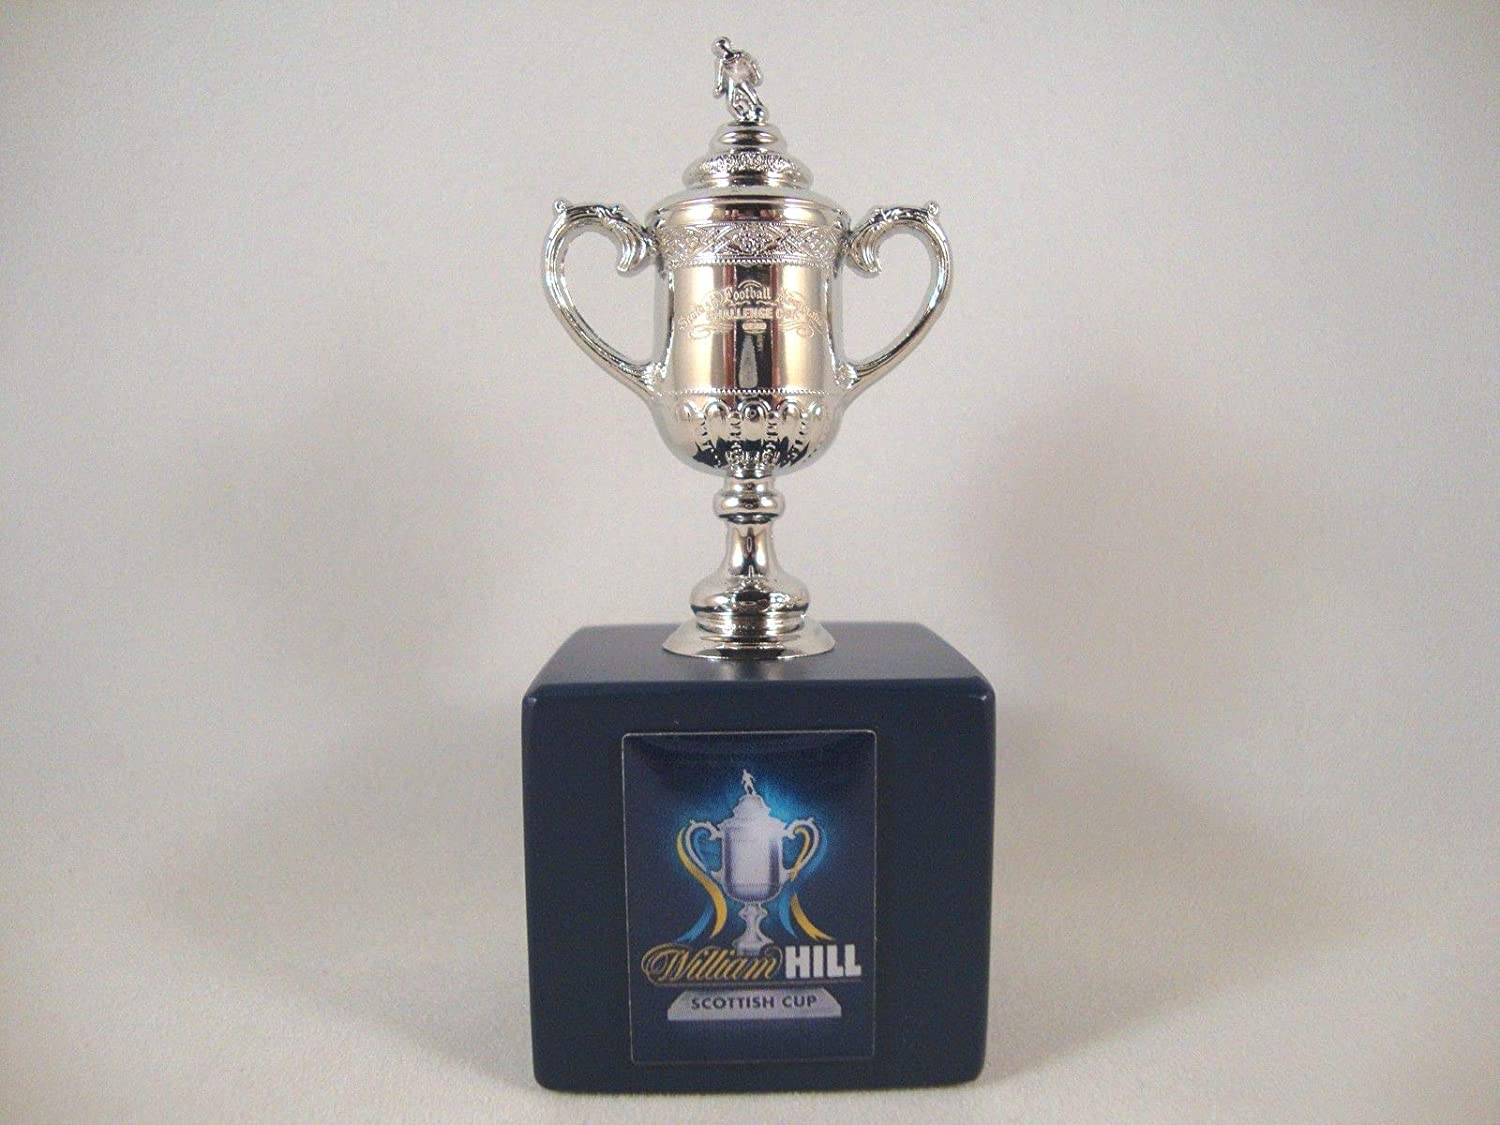 Scottish Cup - Trophy replica on wooden pedestal (45 mm)